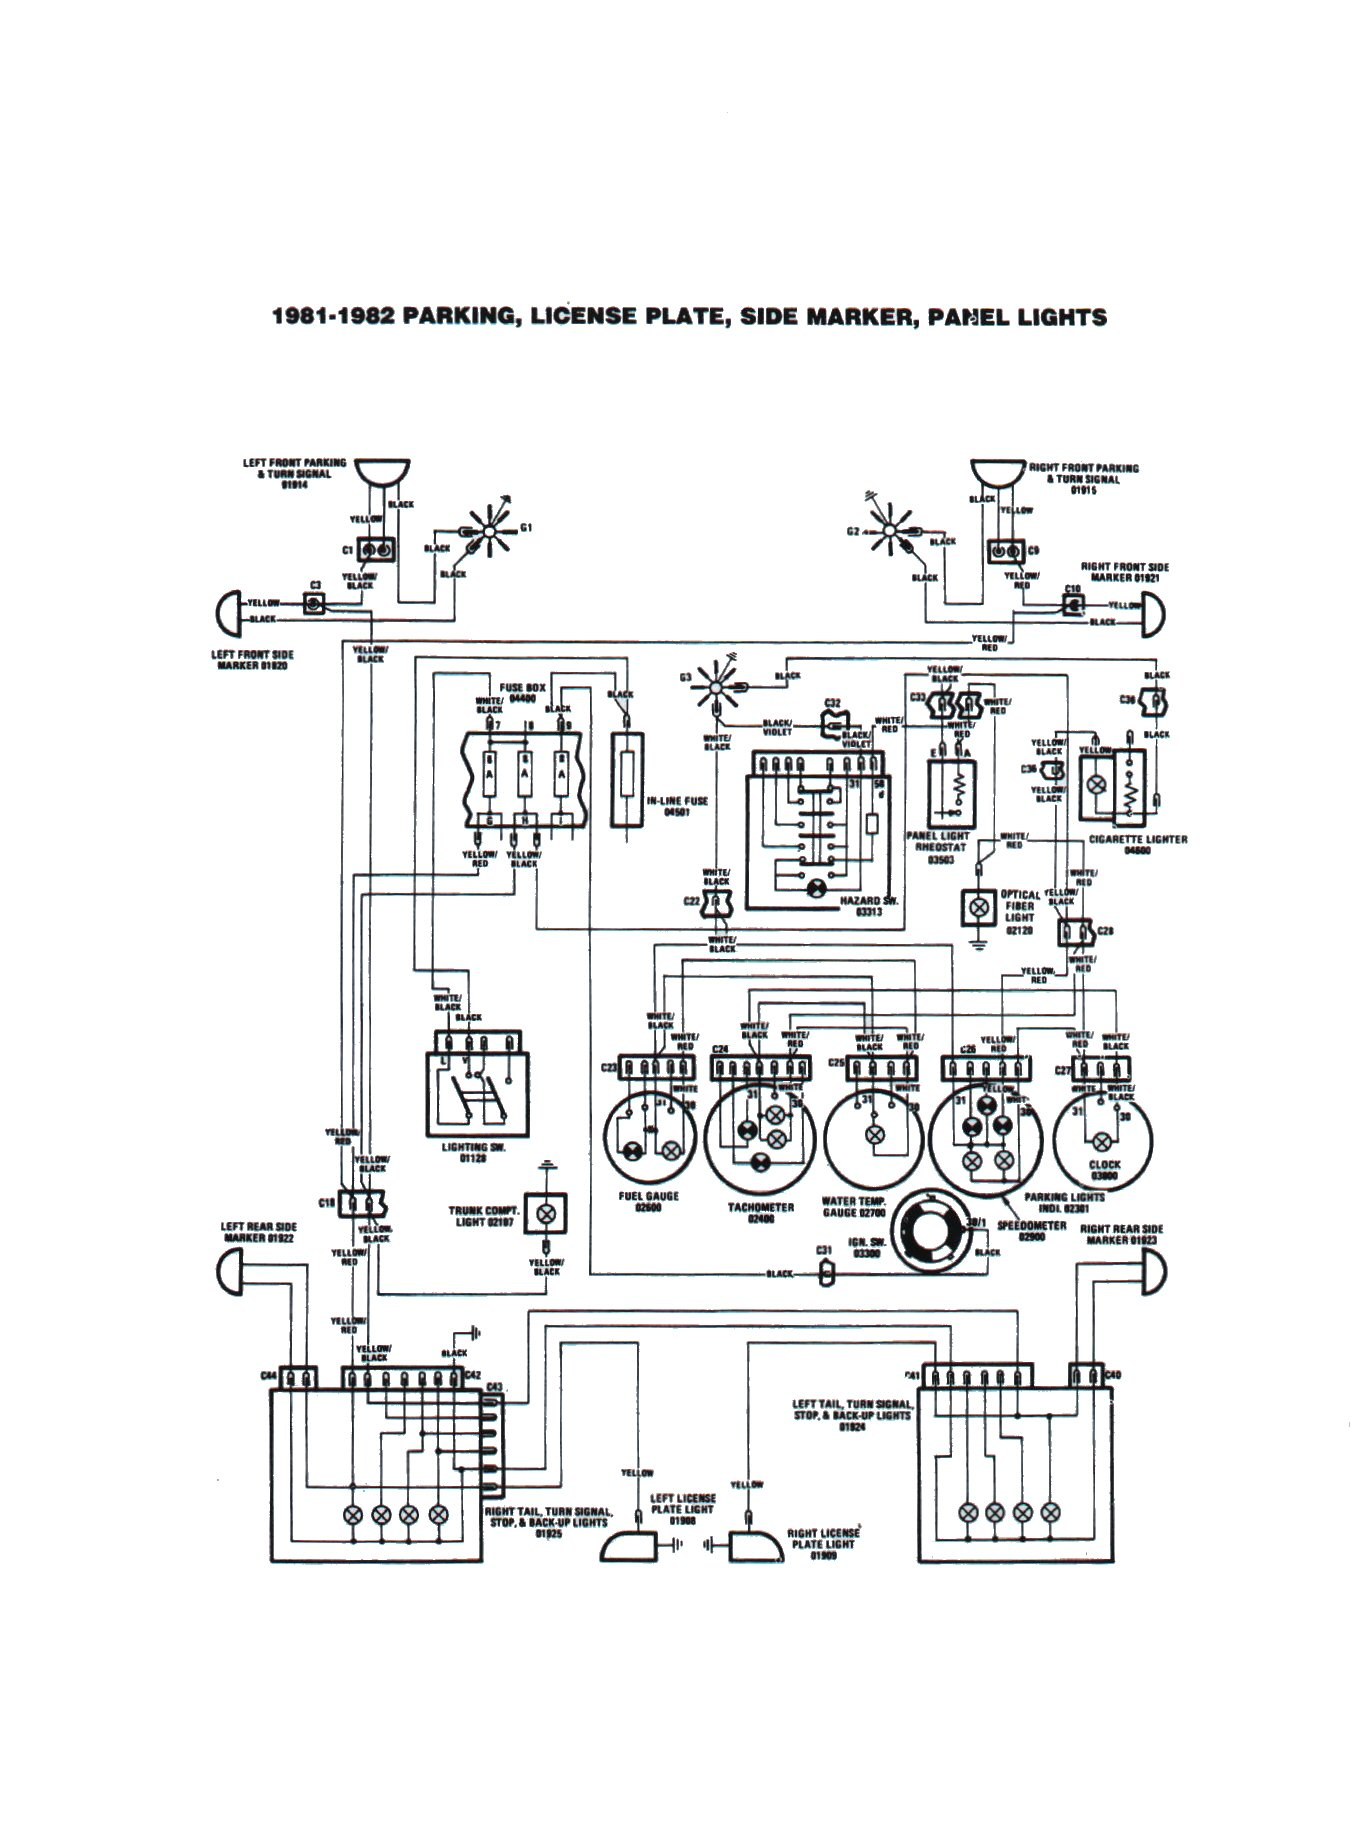 fiat 124 spider electrical schemes 1976 Chevy Truck Wiring Diagram original scheme